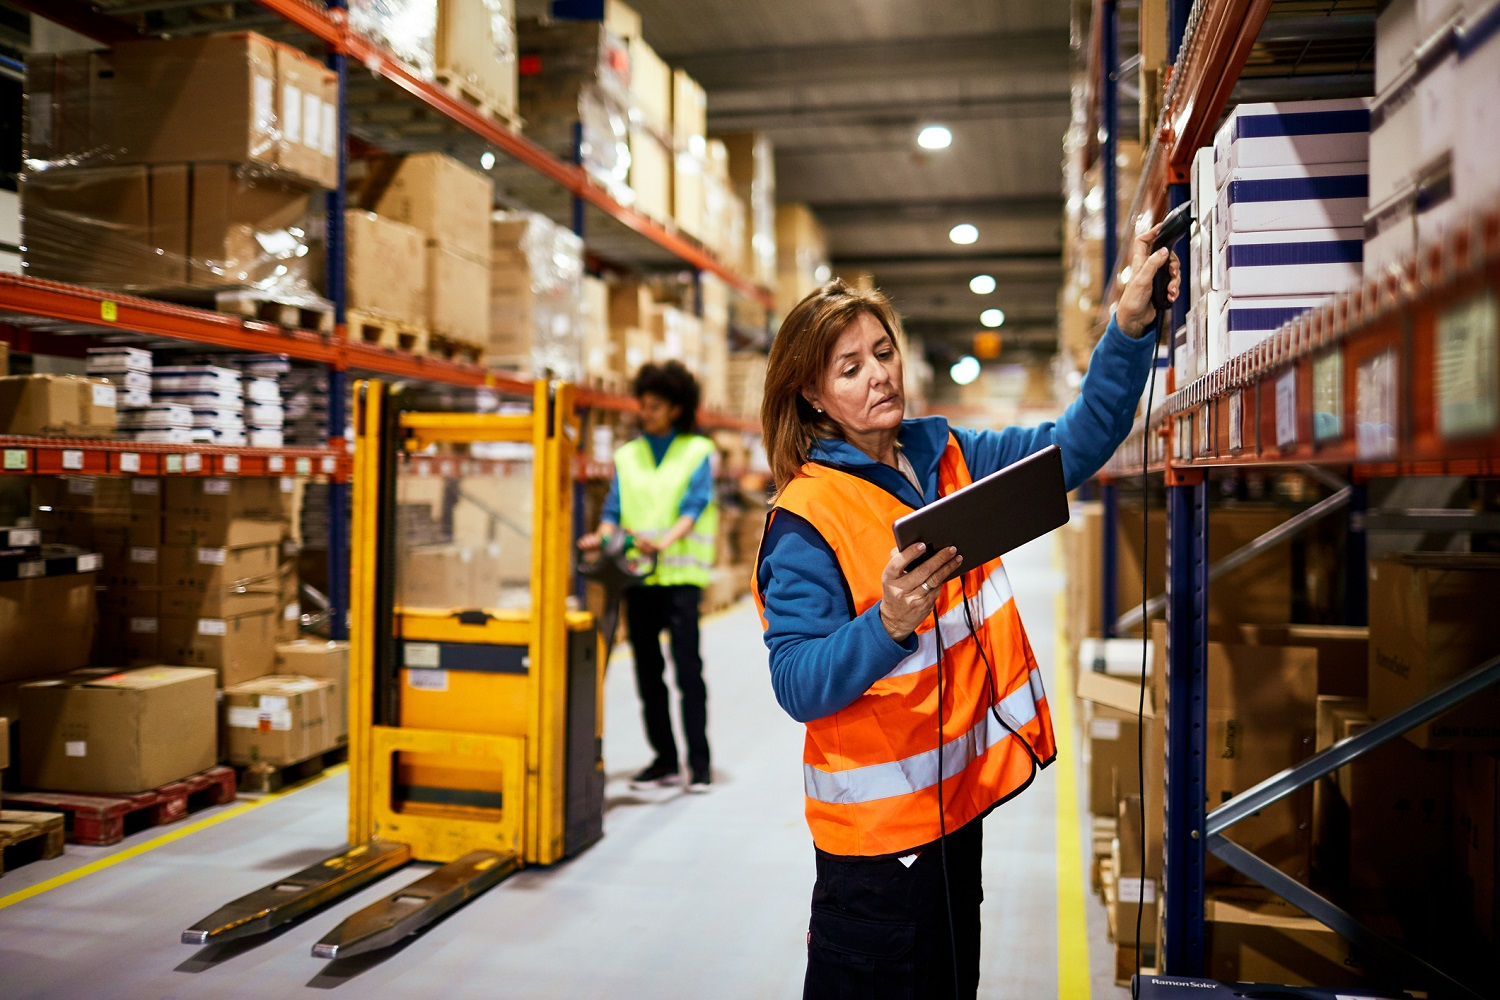 one female warehouse worker in bright yellow vest operating forklift as another female warehouse worker in a bright orange vest scans a label in a box